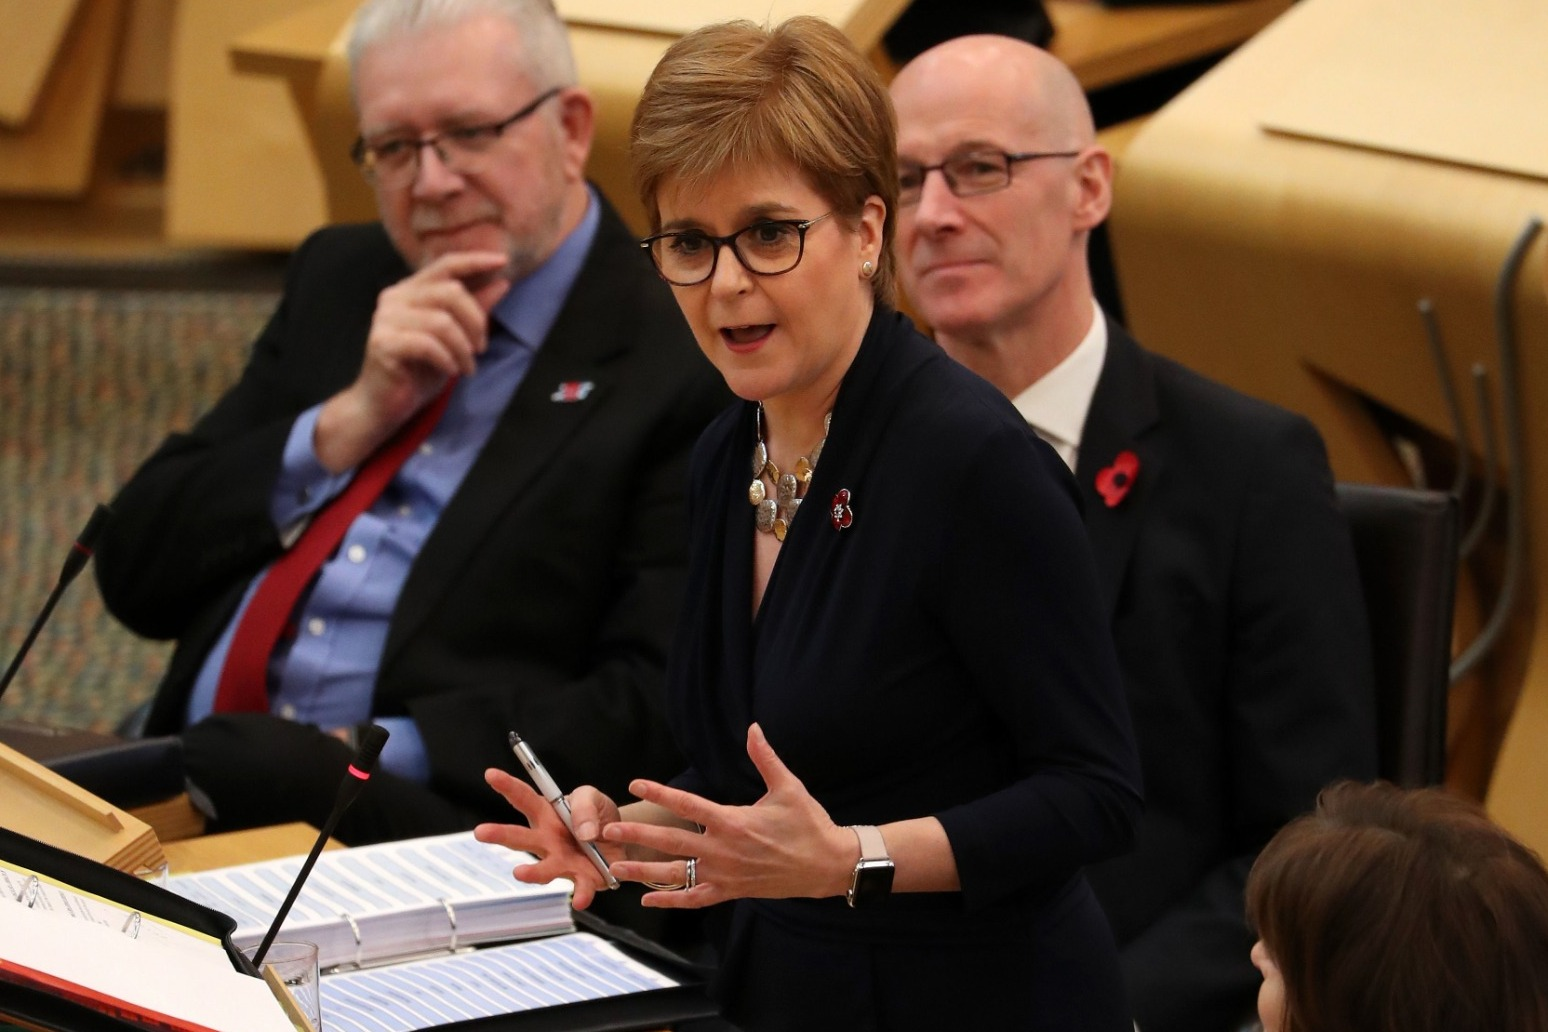 SCOTTISH INDEPENDENCE IS WITHIN TOUCHING DISTANCE - STURGEON